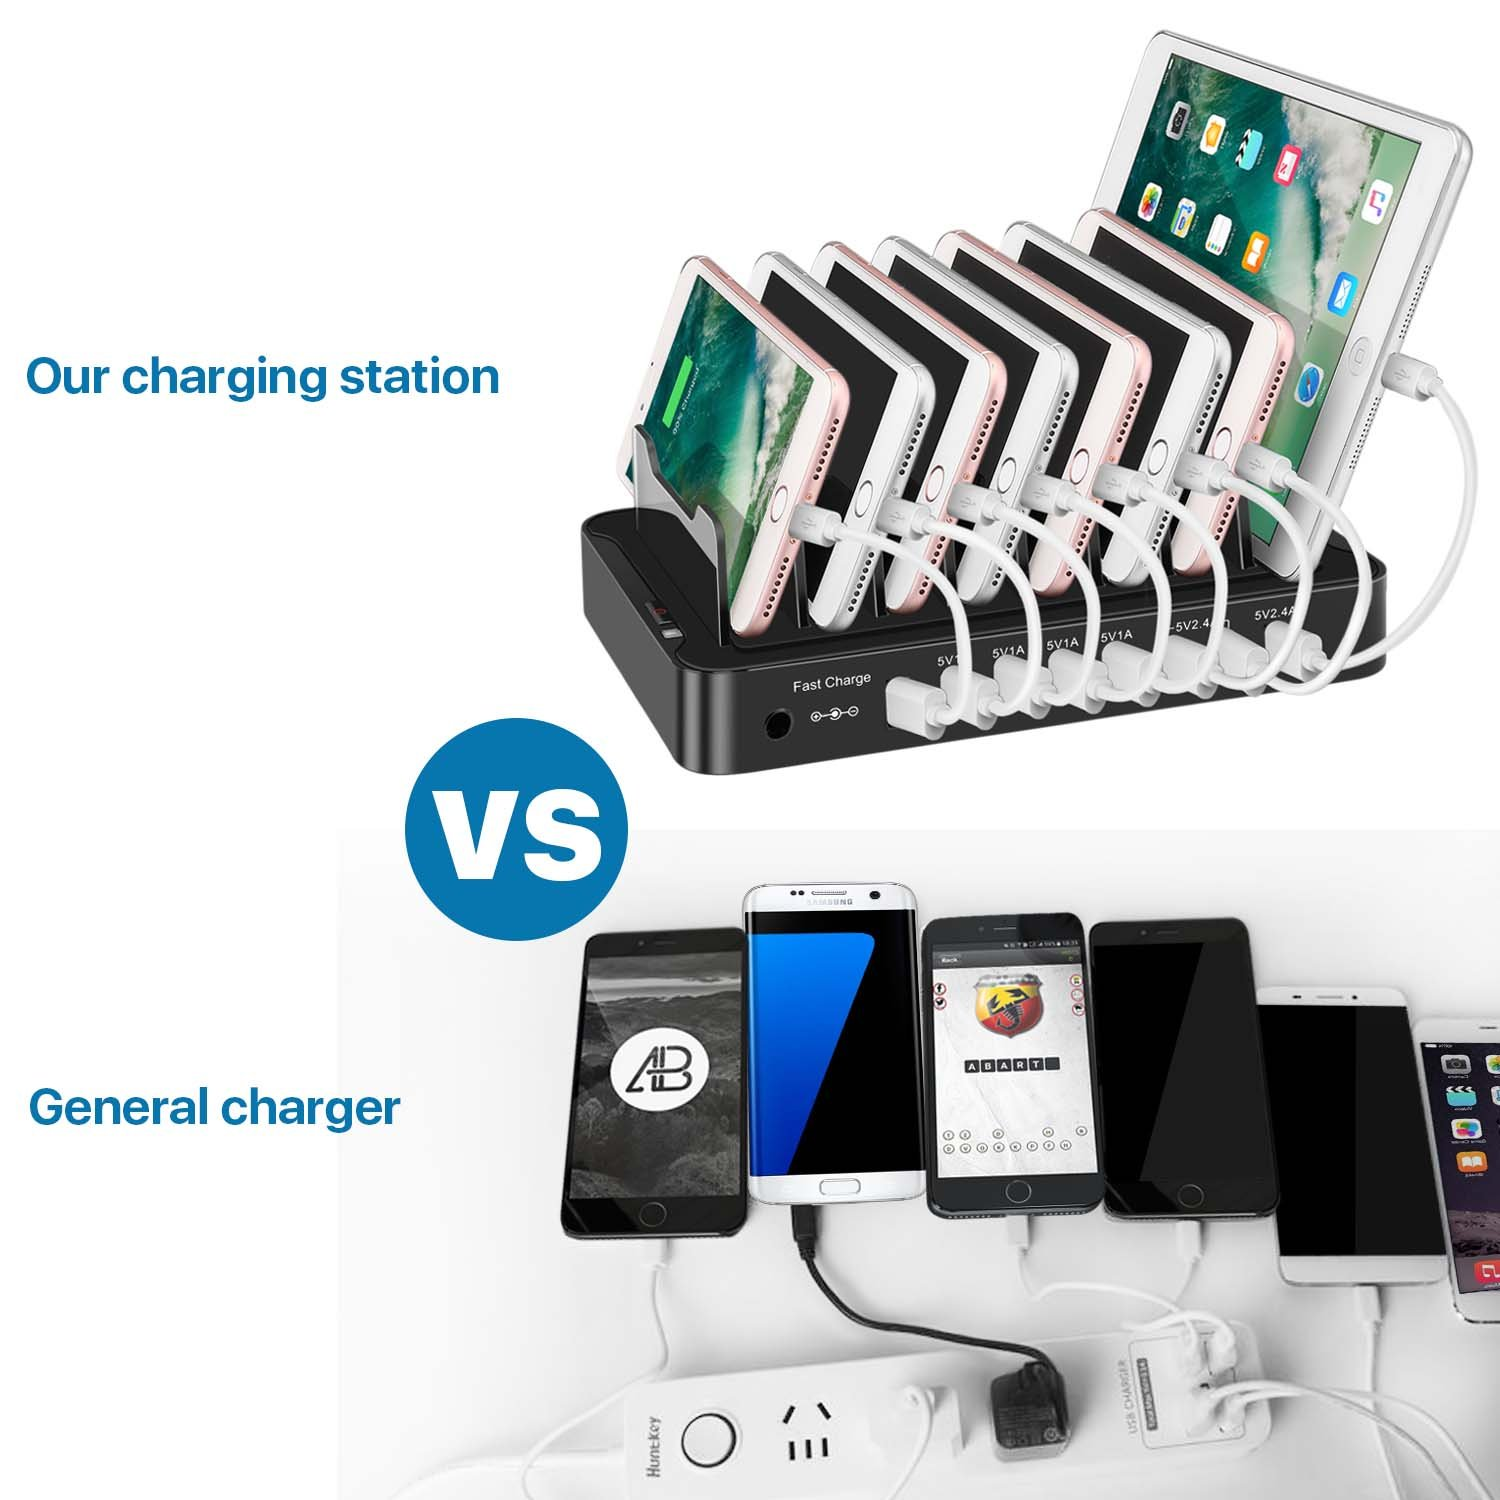 TNP USB Charging Station Dock Desktop Organizer 8 Port - Hub Charger with Fast Charge for Multiple Devices, Kindle, Smartphone, Tablets, iPhone 8/ X/ ...